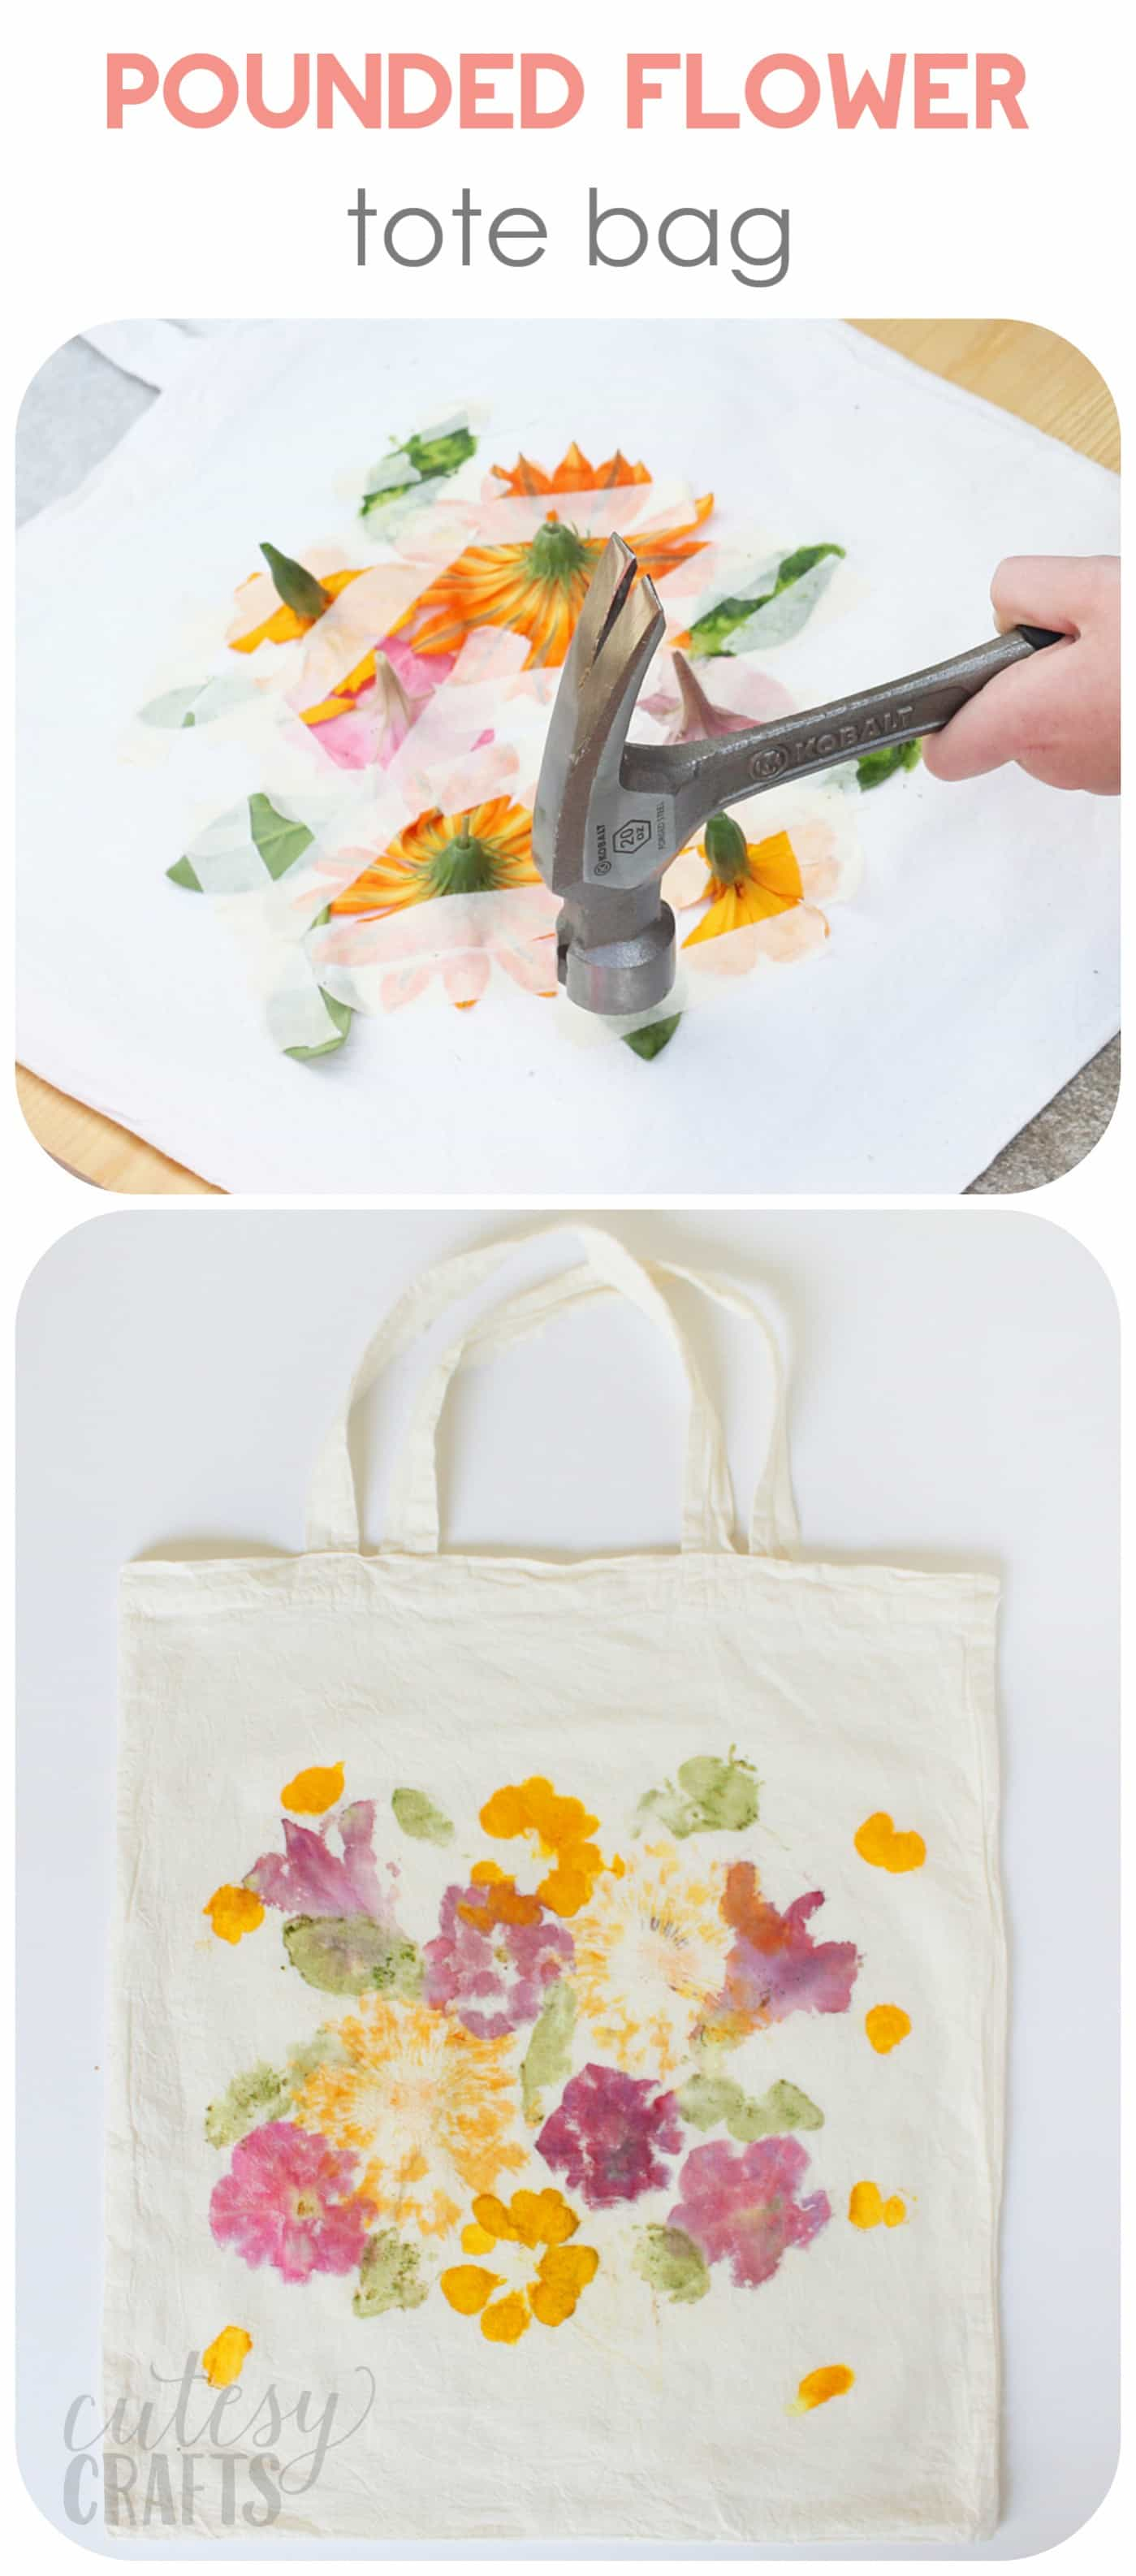 Tote made with flower pounding